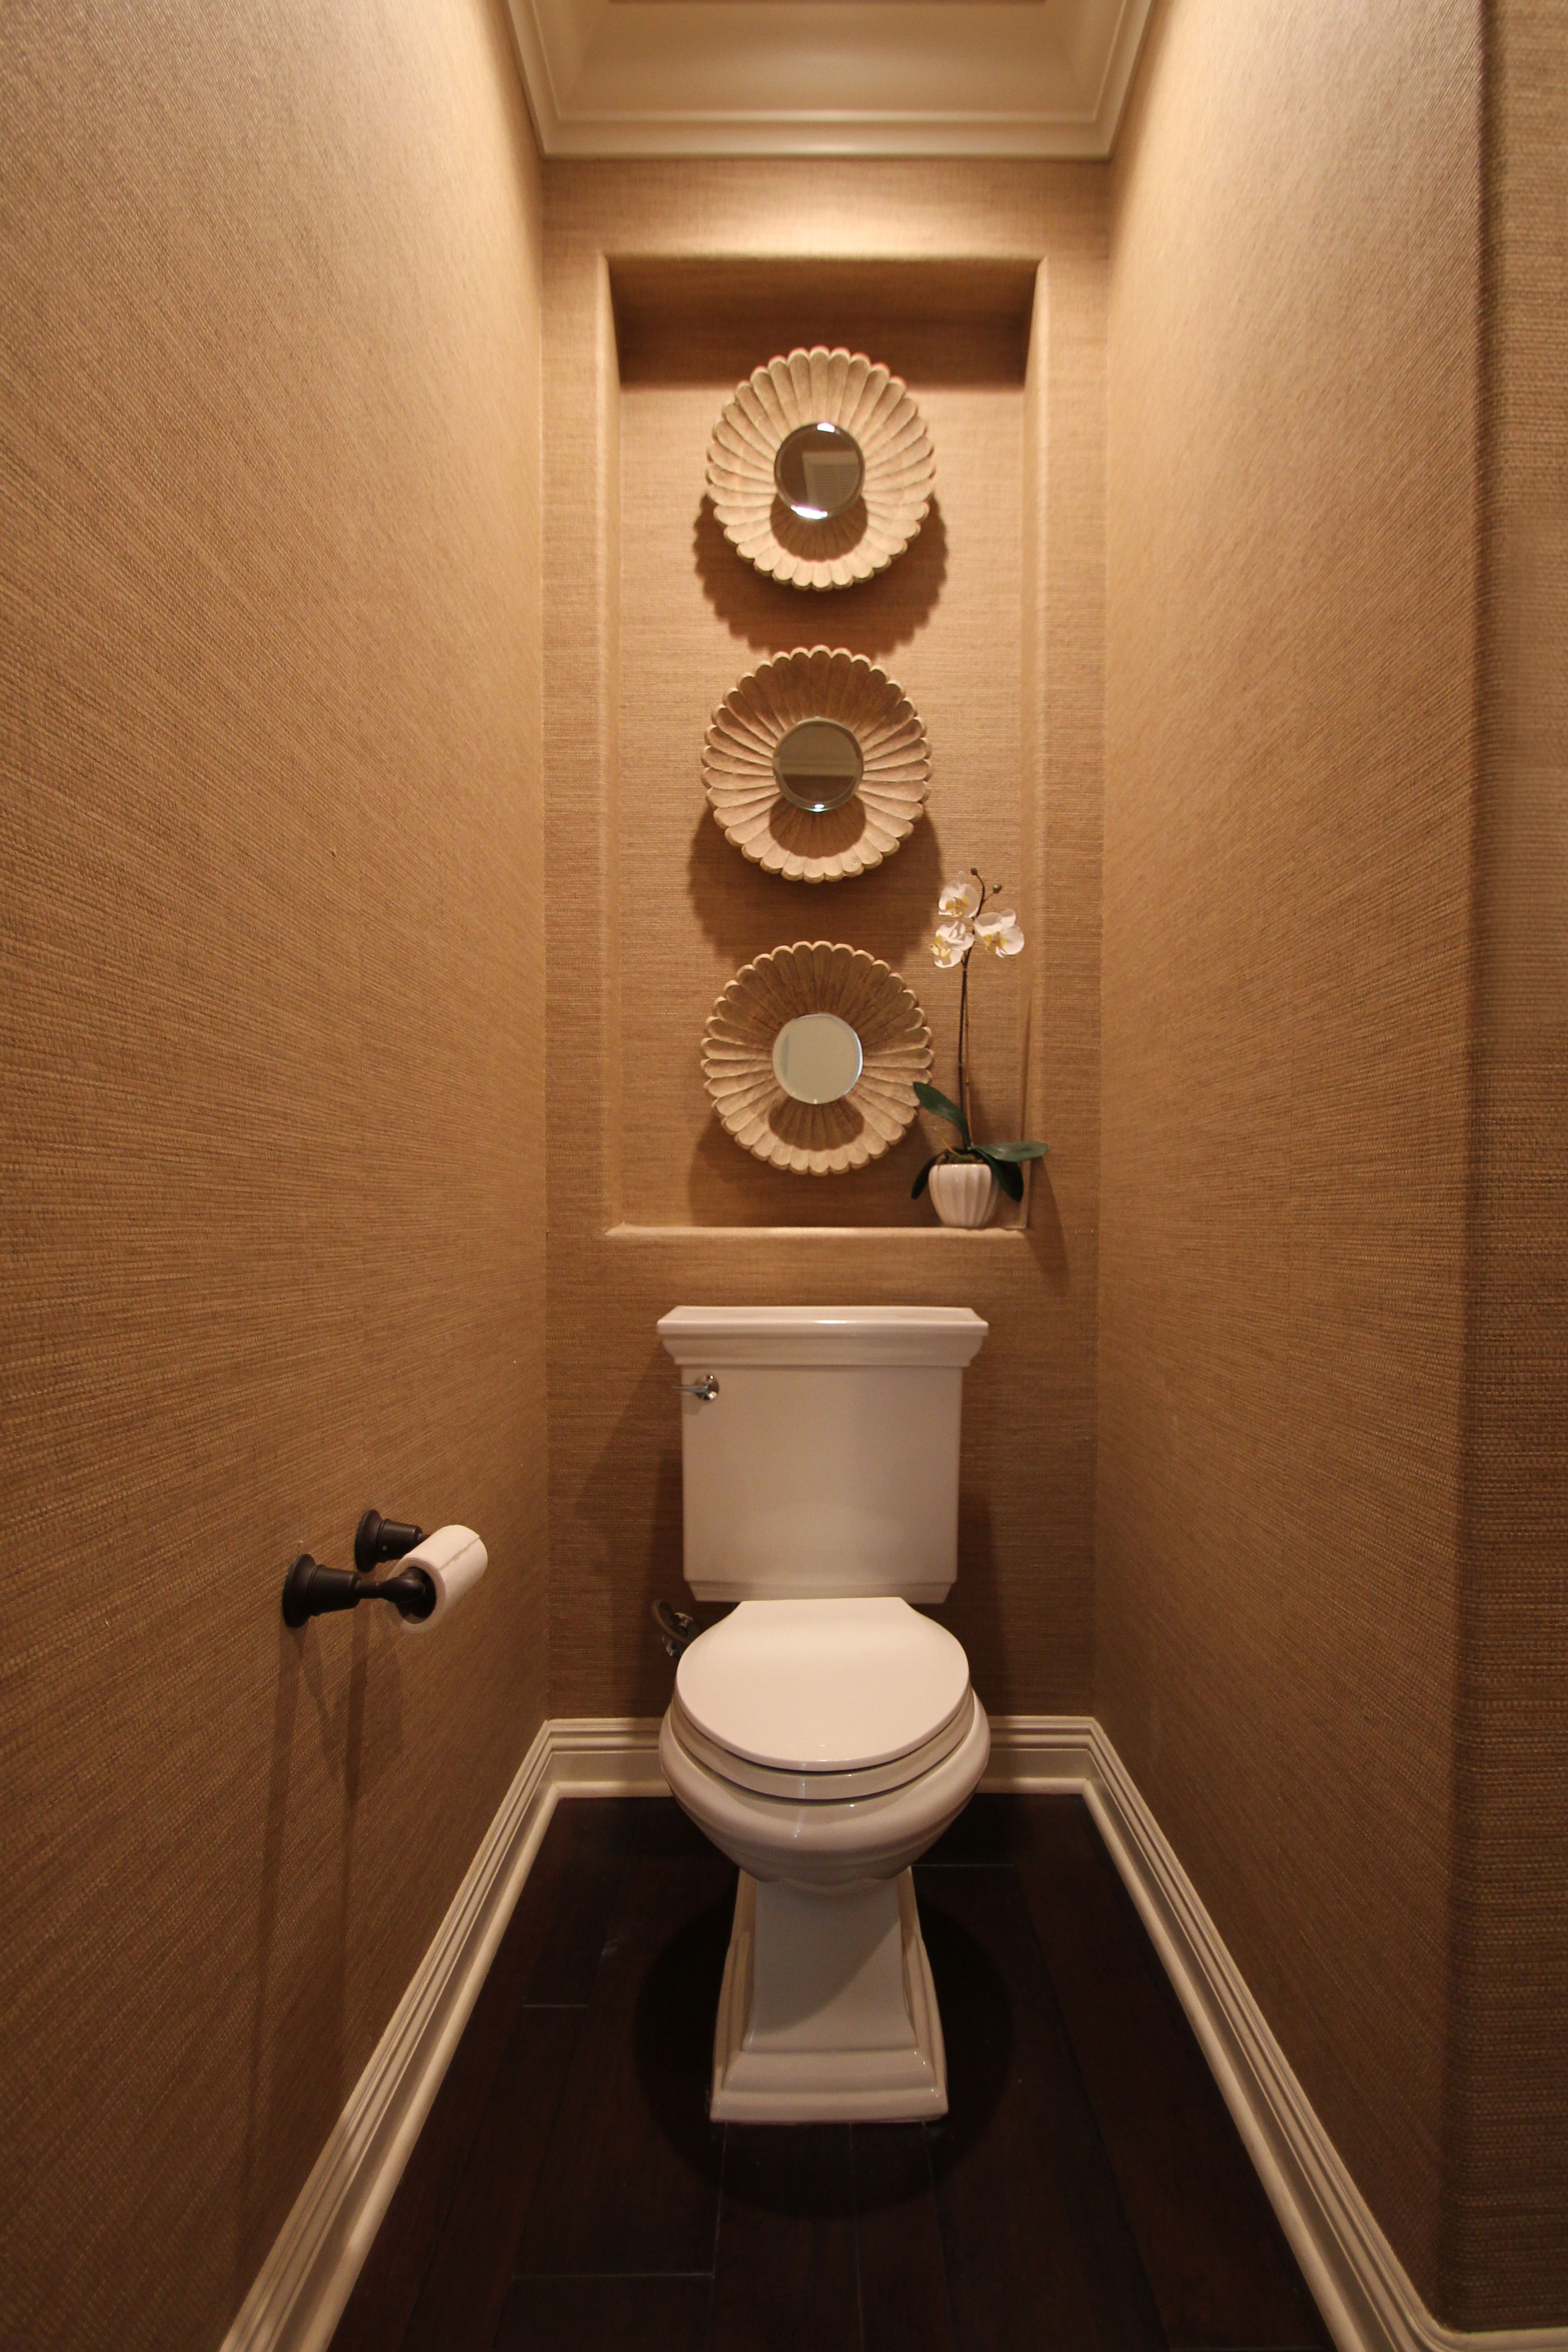 Powder Room, Toilet, Wallpaper, Mirror, Niche